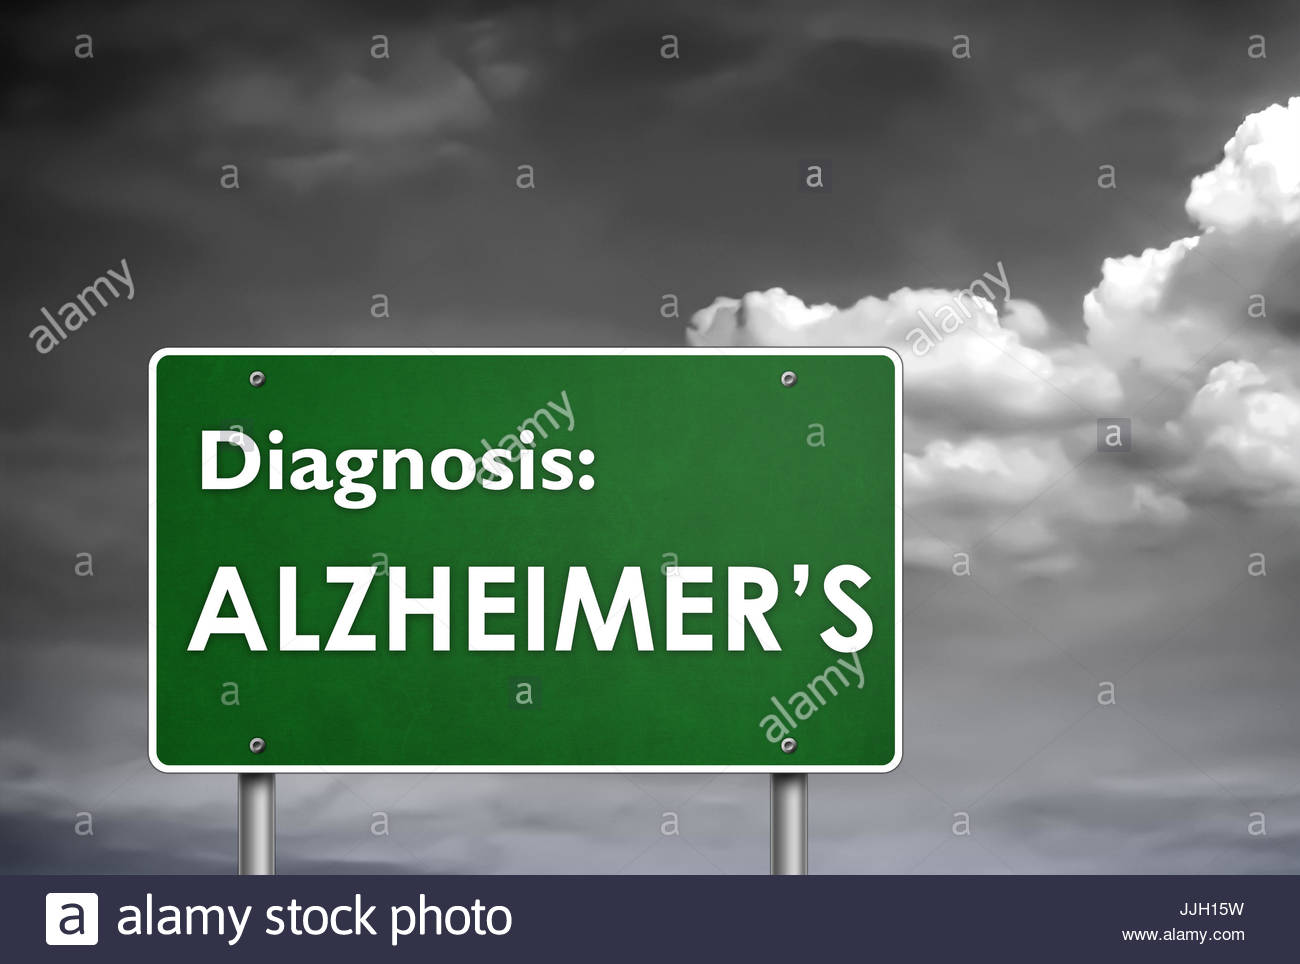 Diagnose Alzheimer Stockbild